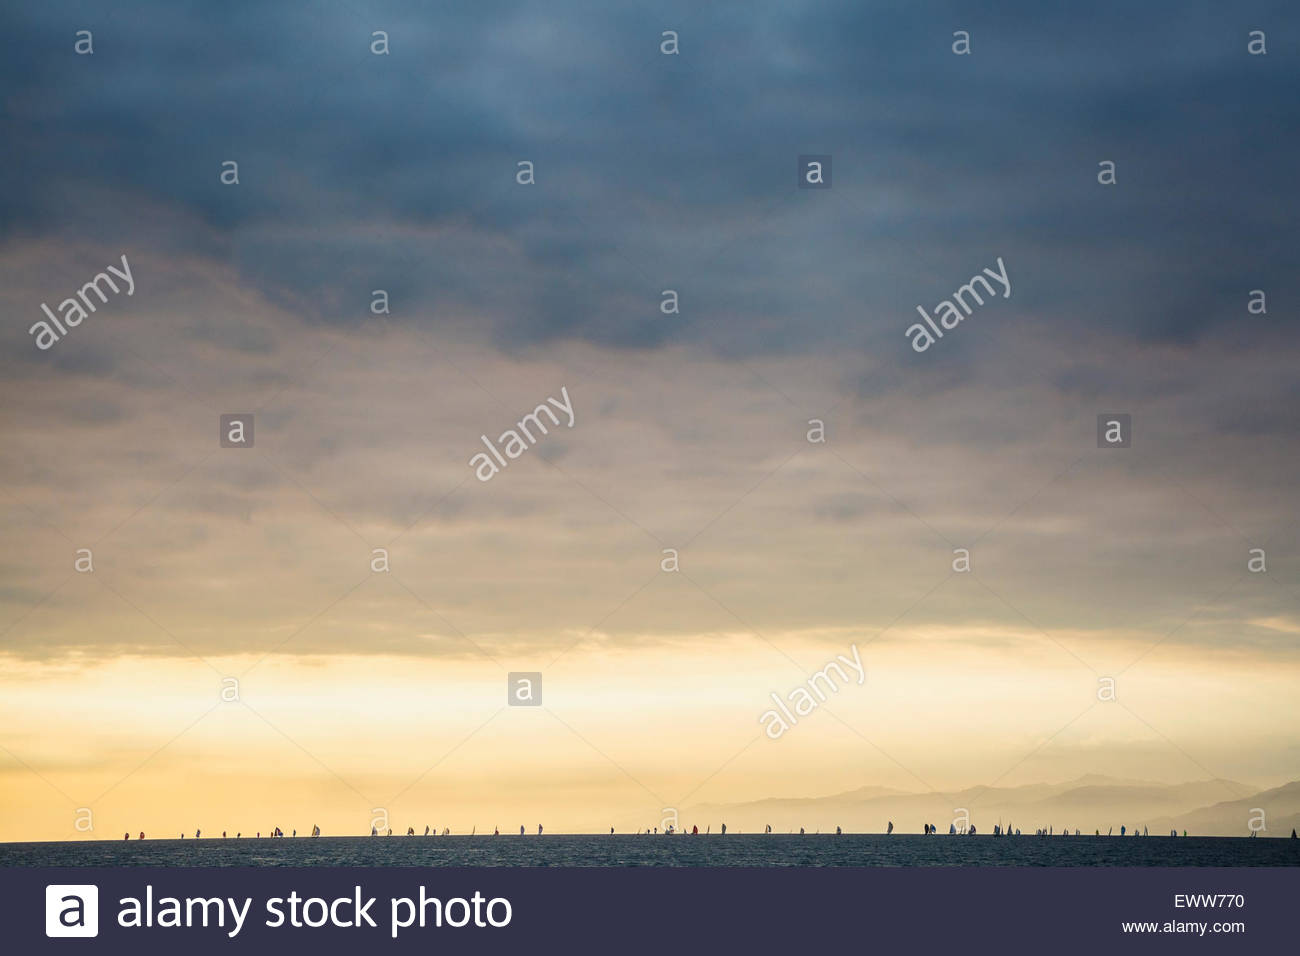 Clouds in sunset sky over ocean - Stock Image